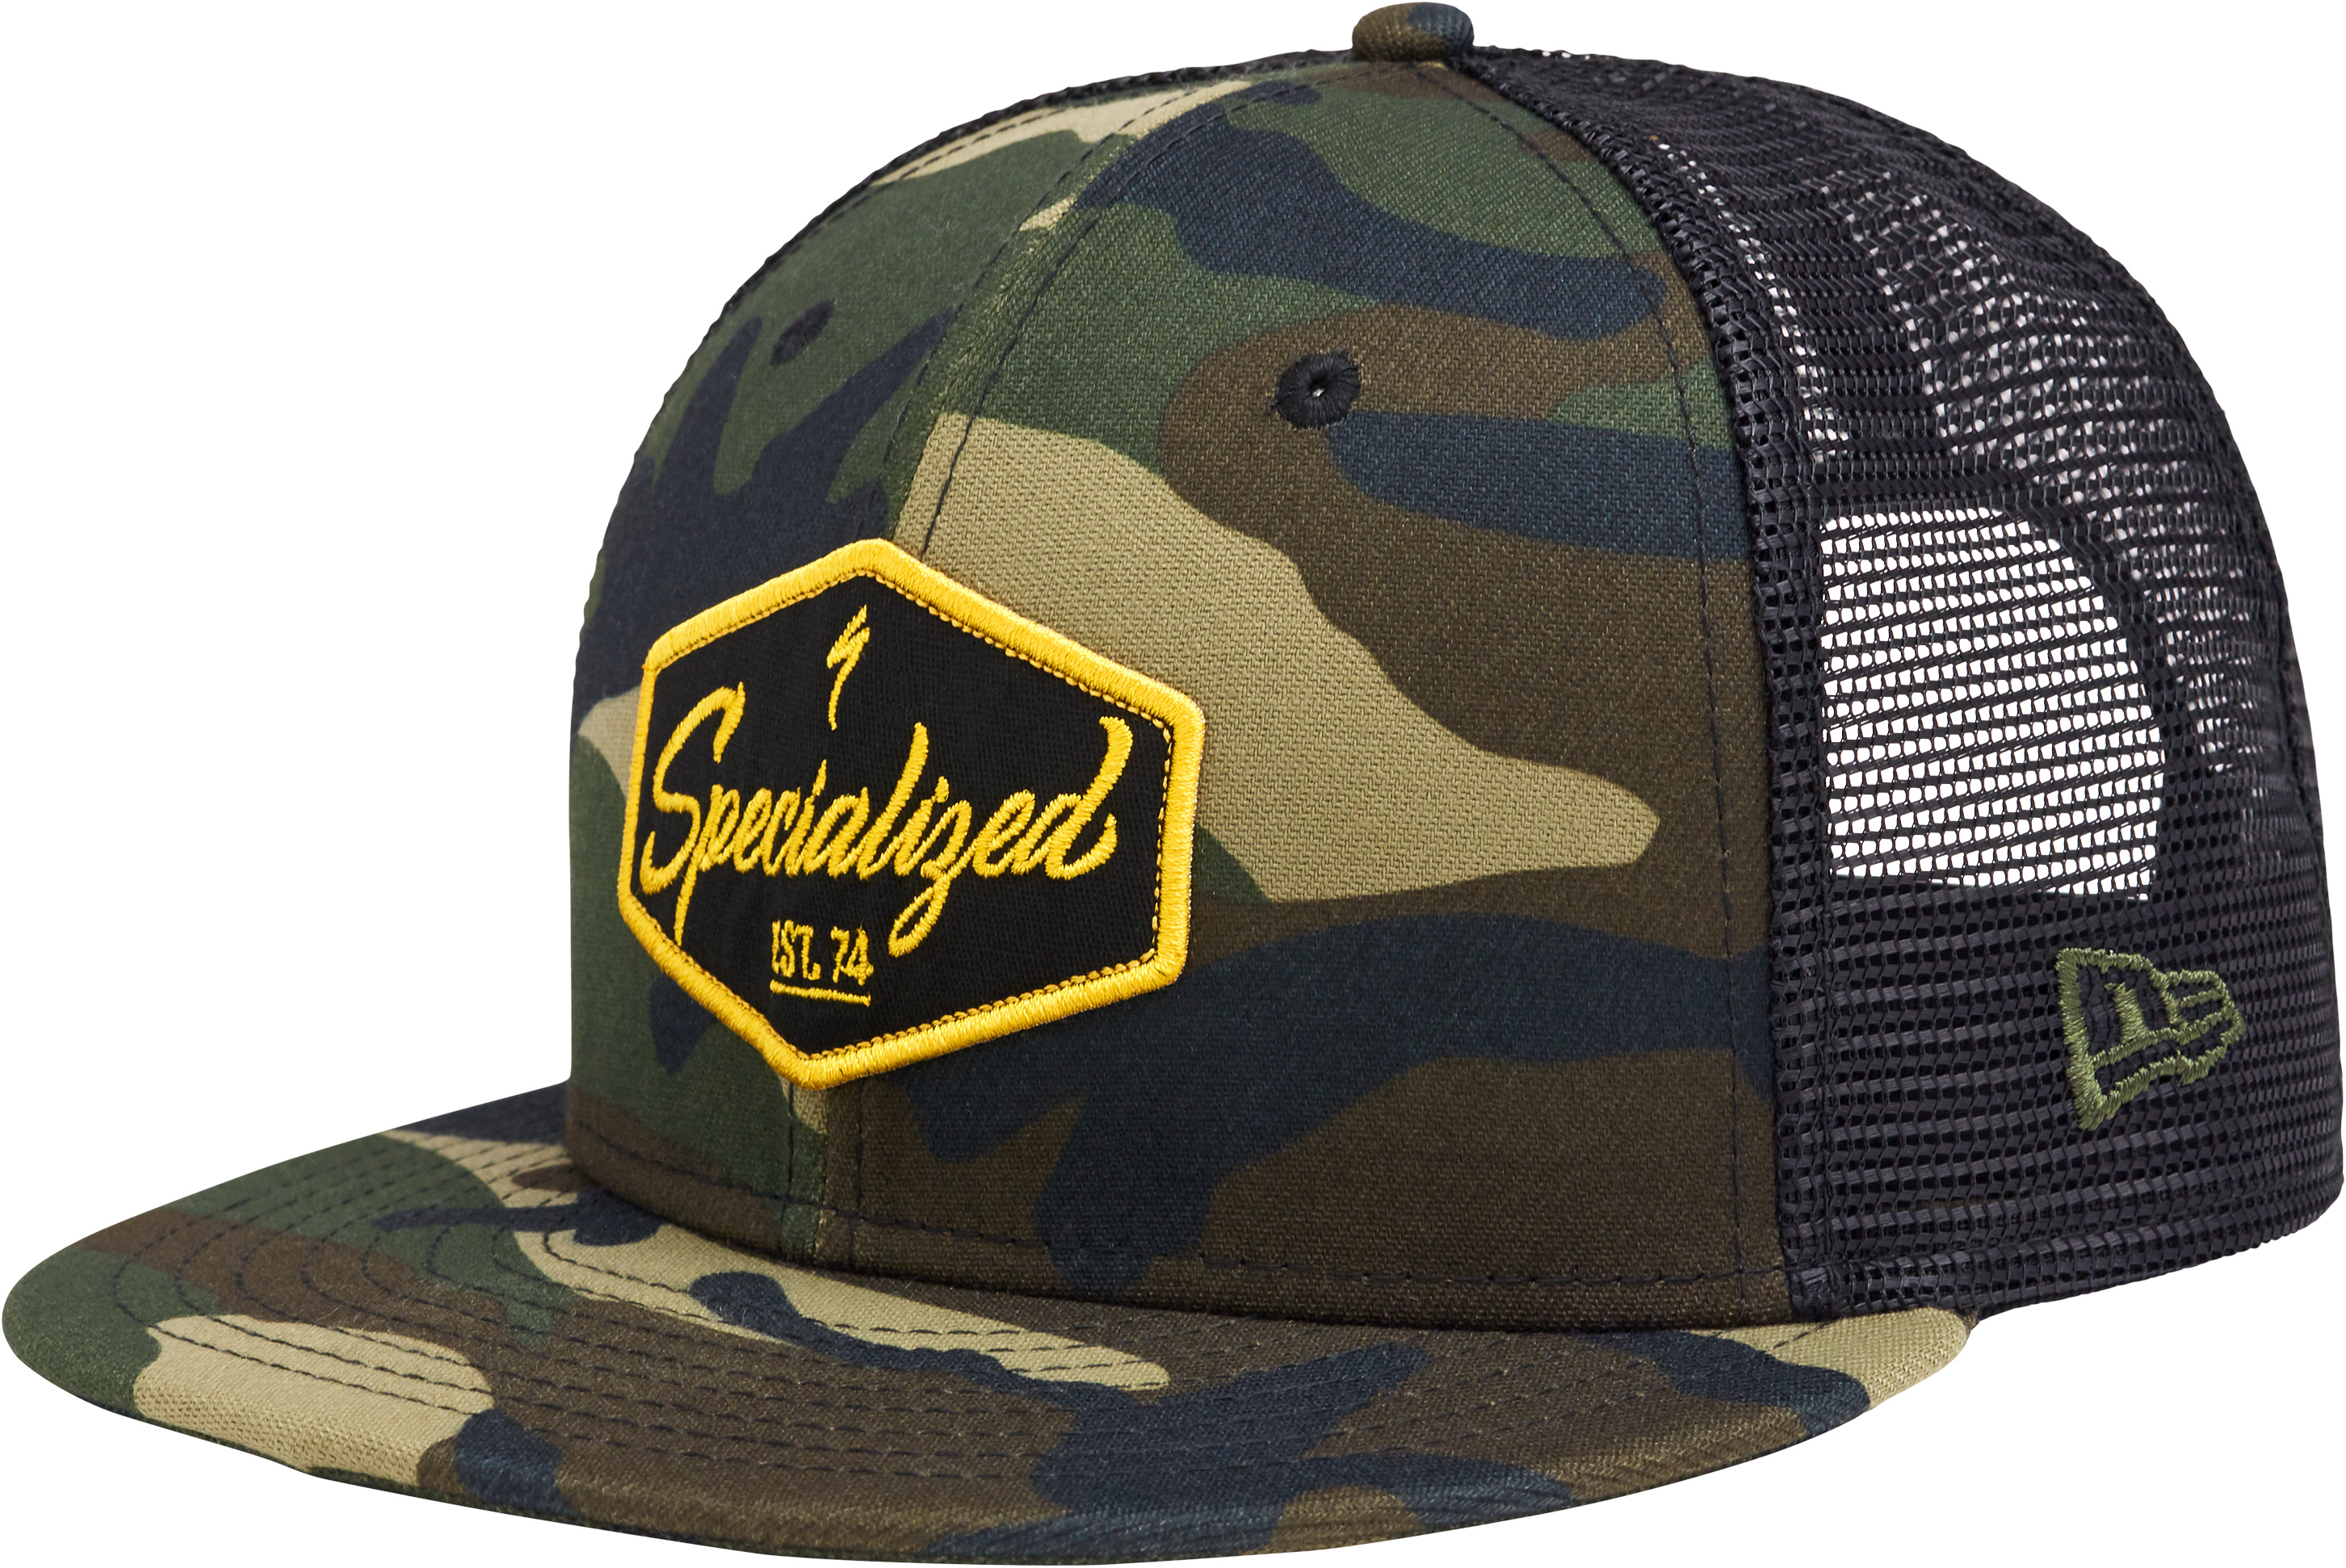 2019 Specialized Electro New Era 9Fifty Snapback Cap in Camo £35.00 be3f9ae00e9